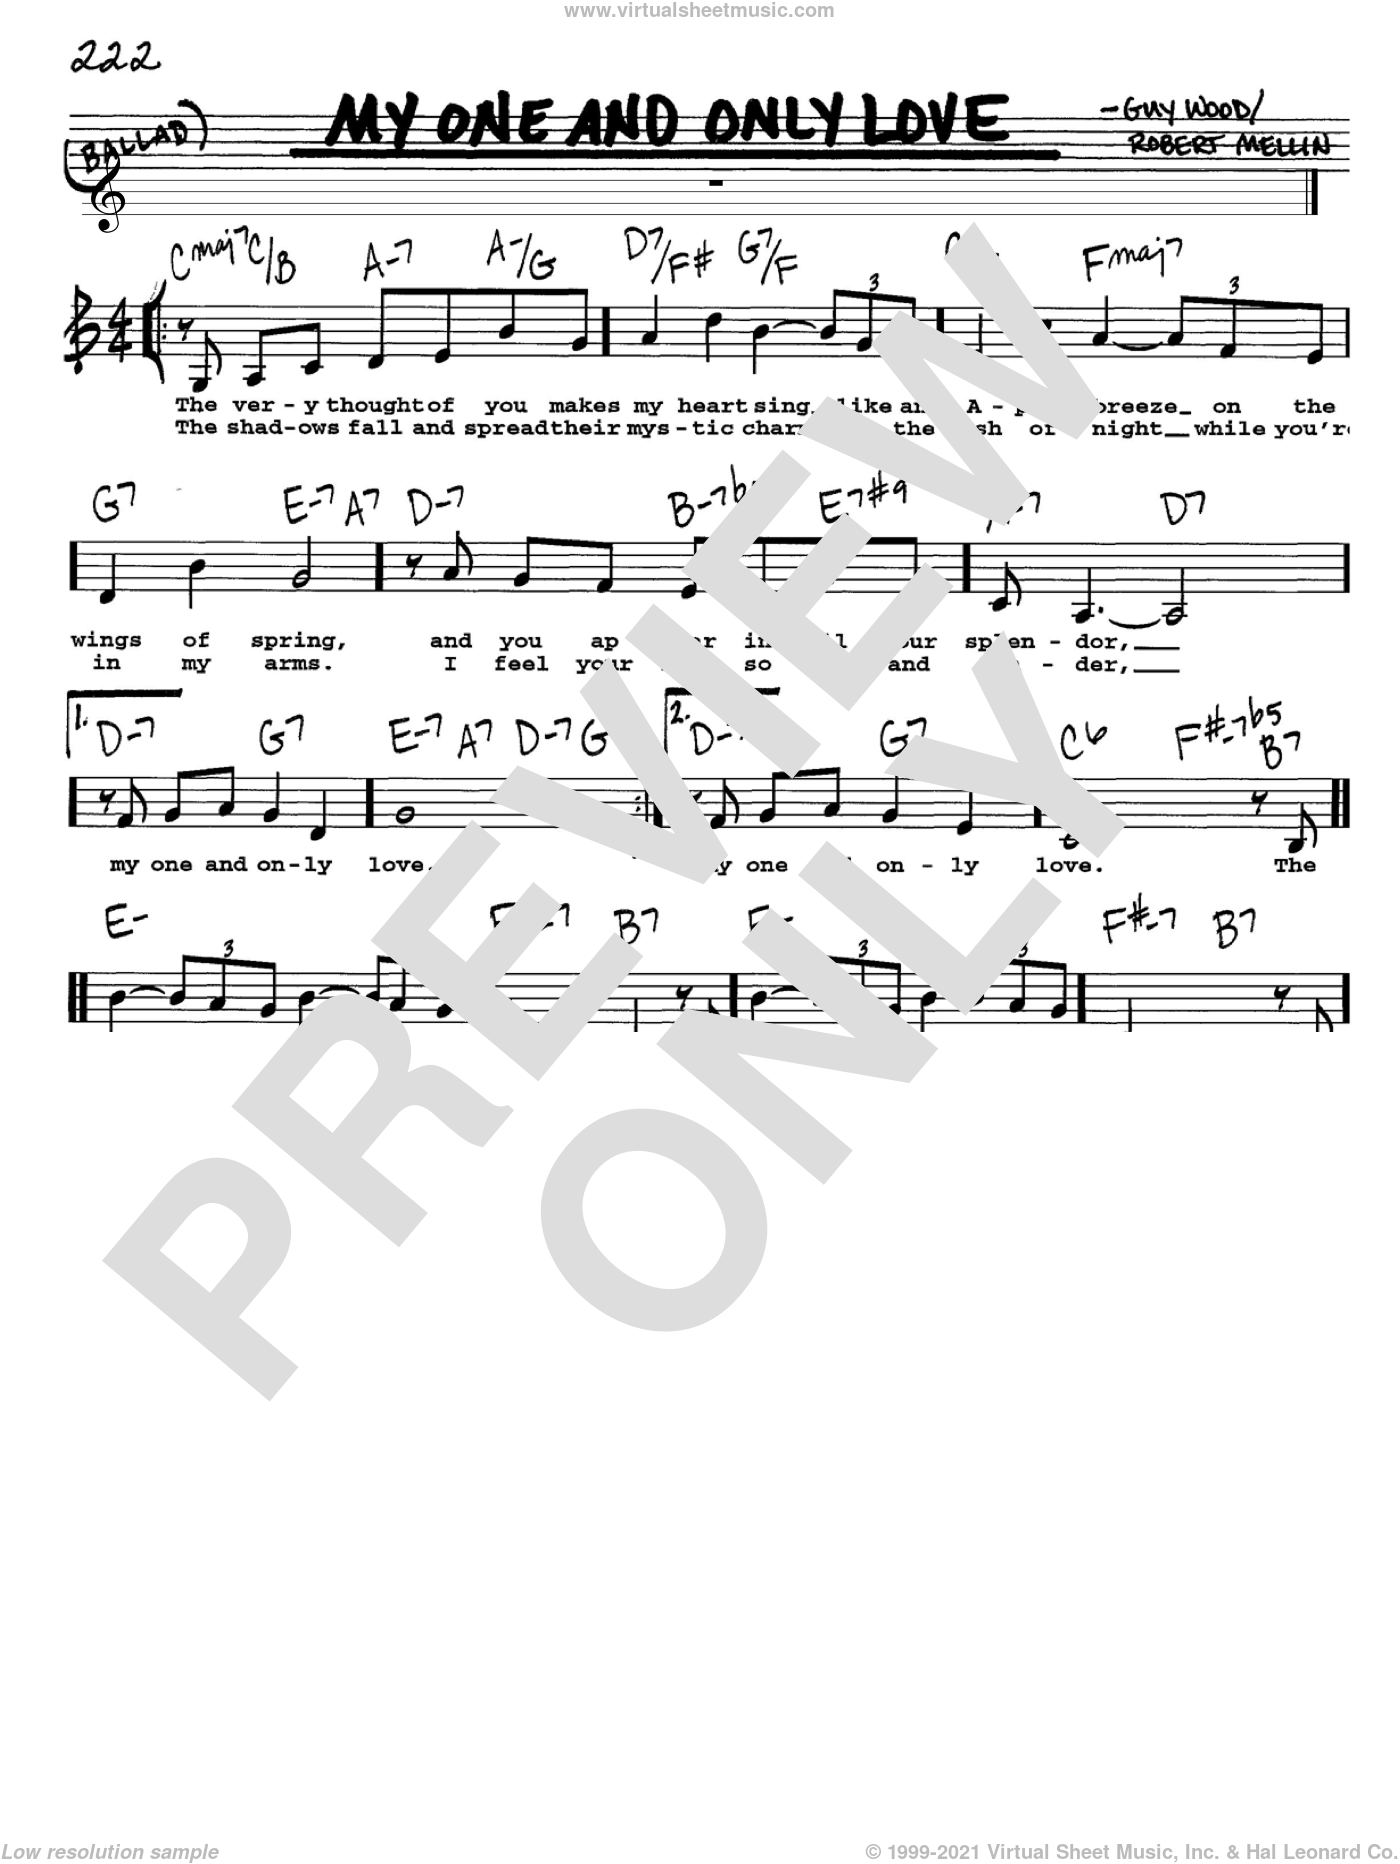 My One And Only Love sheet music for voice and other instruments (Vocal Volume 1) by Guy Wood and Robert Mellin. Score Image Preview.